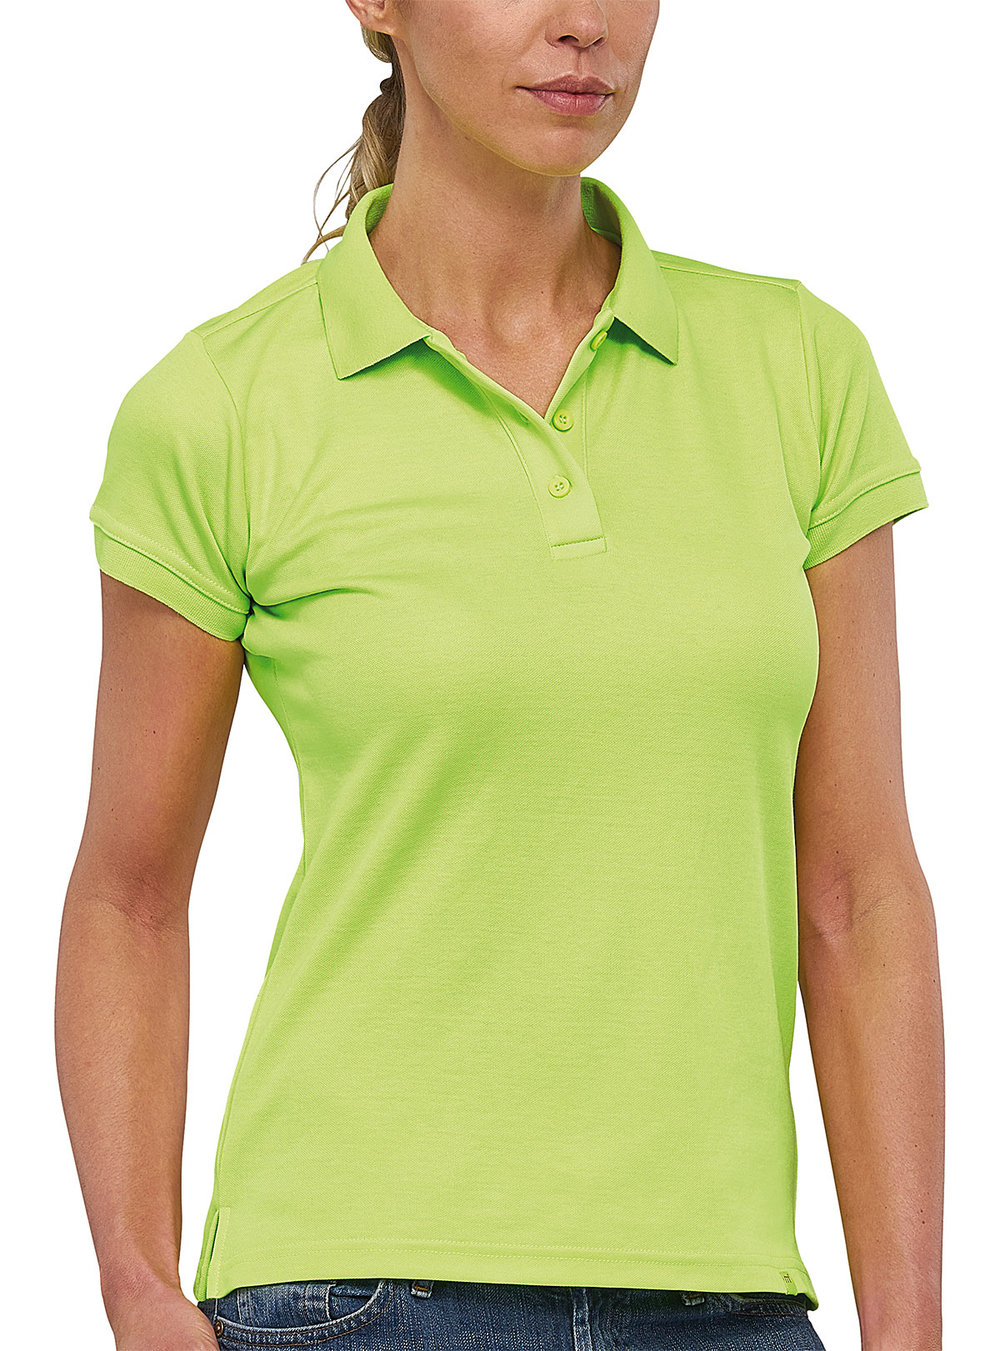 FLASH POWERDRY POLO SHIRT FEMALE MACGREEN FLUORESCENT